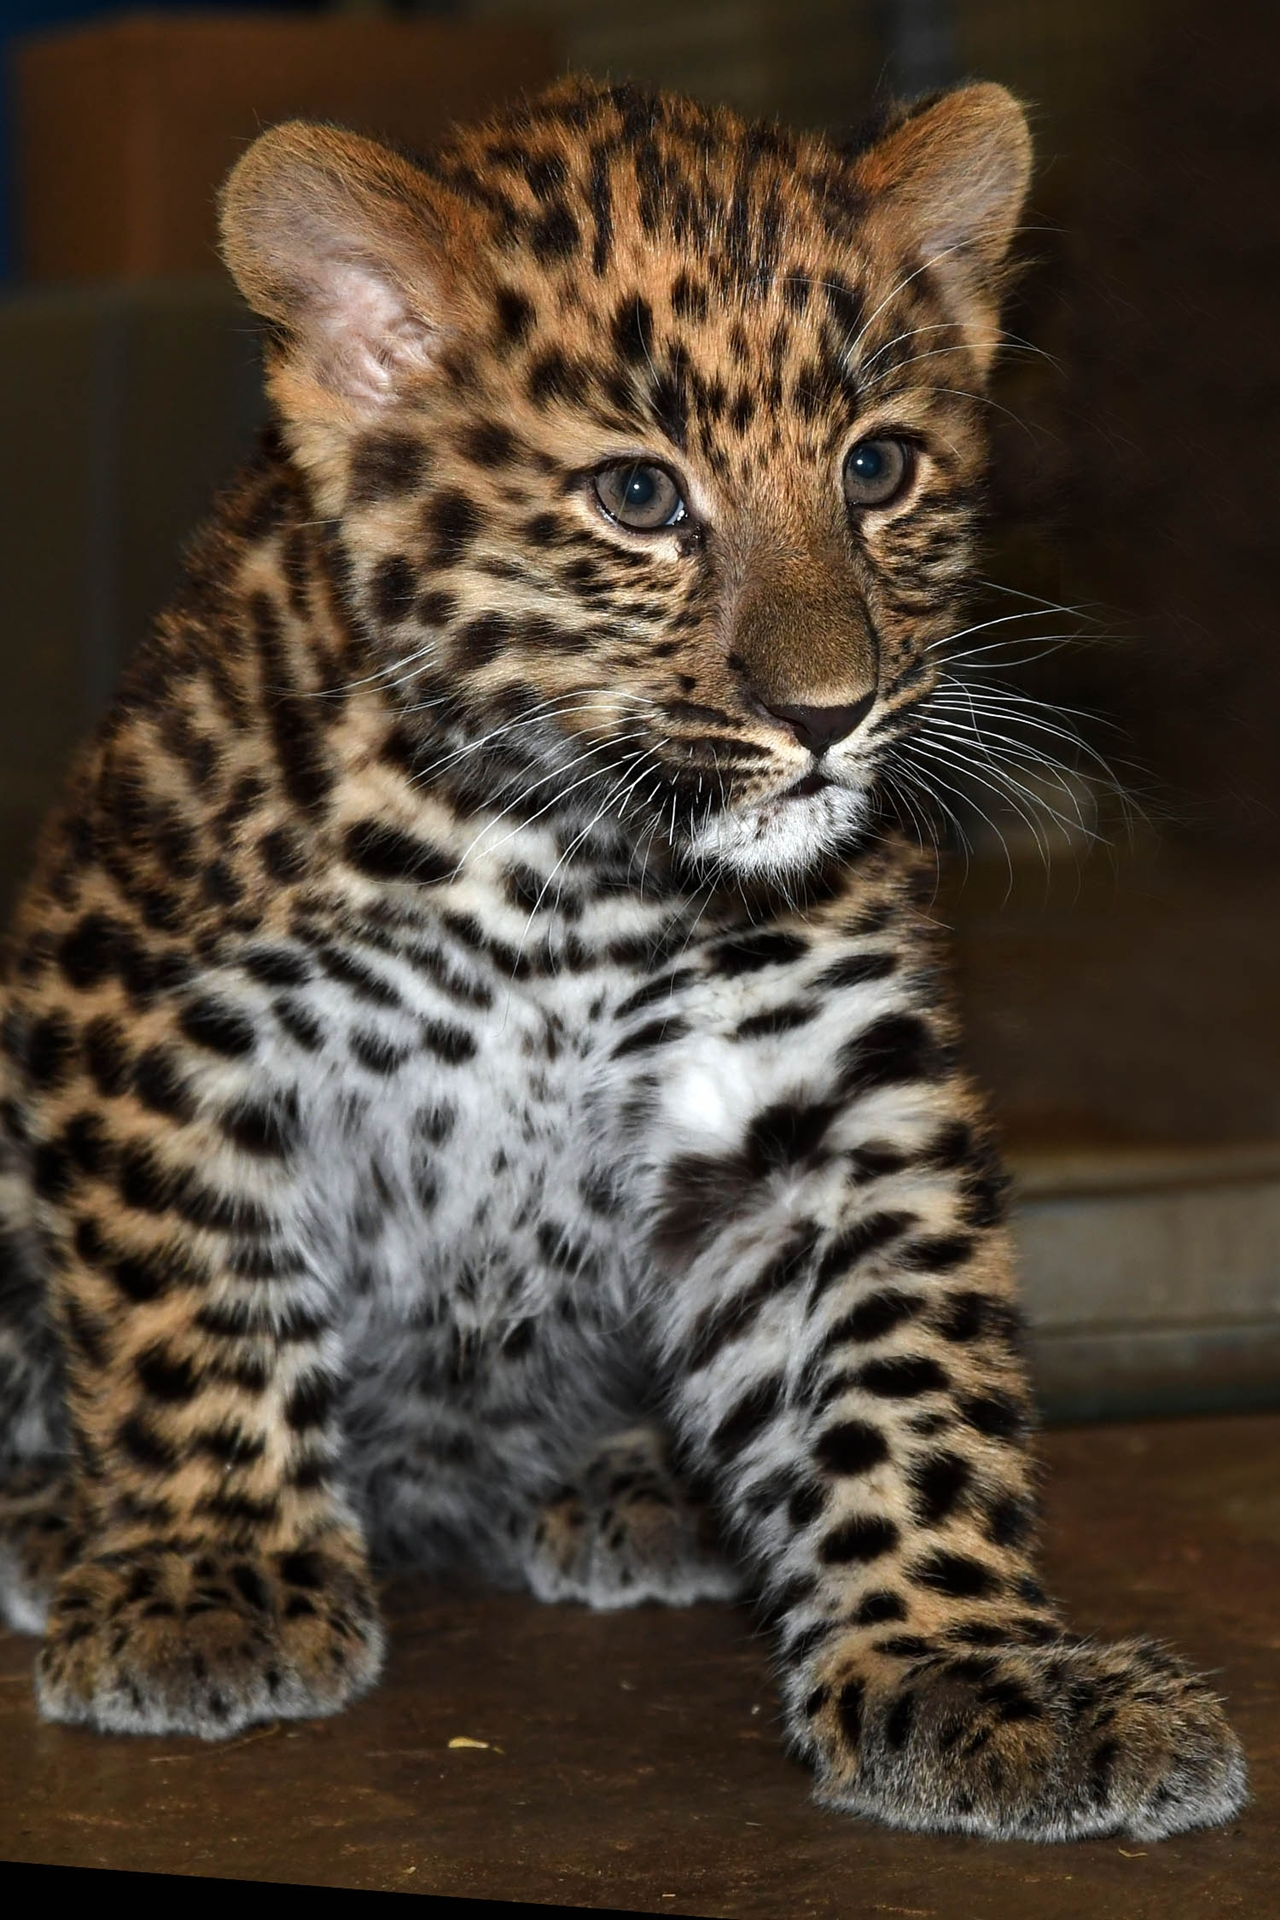 the-brookfield-zoo-was-presented-to-the-public-a-rare-baby-amur-leopard-02